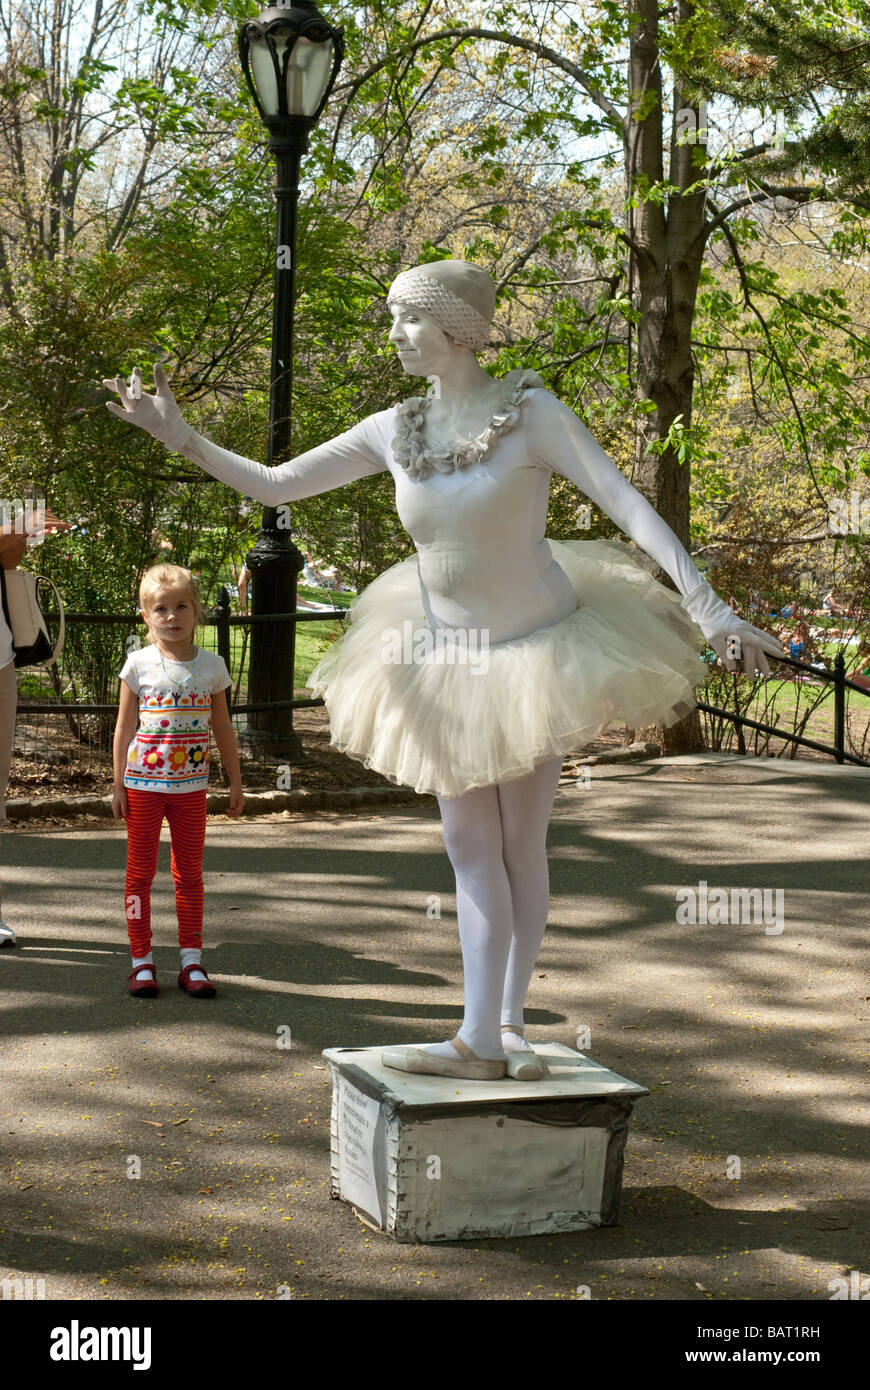 a busker ballerina mimes a statue, watched by a serious little girl, in Central Park, New York City - Stock Image